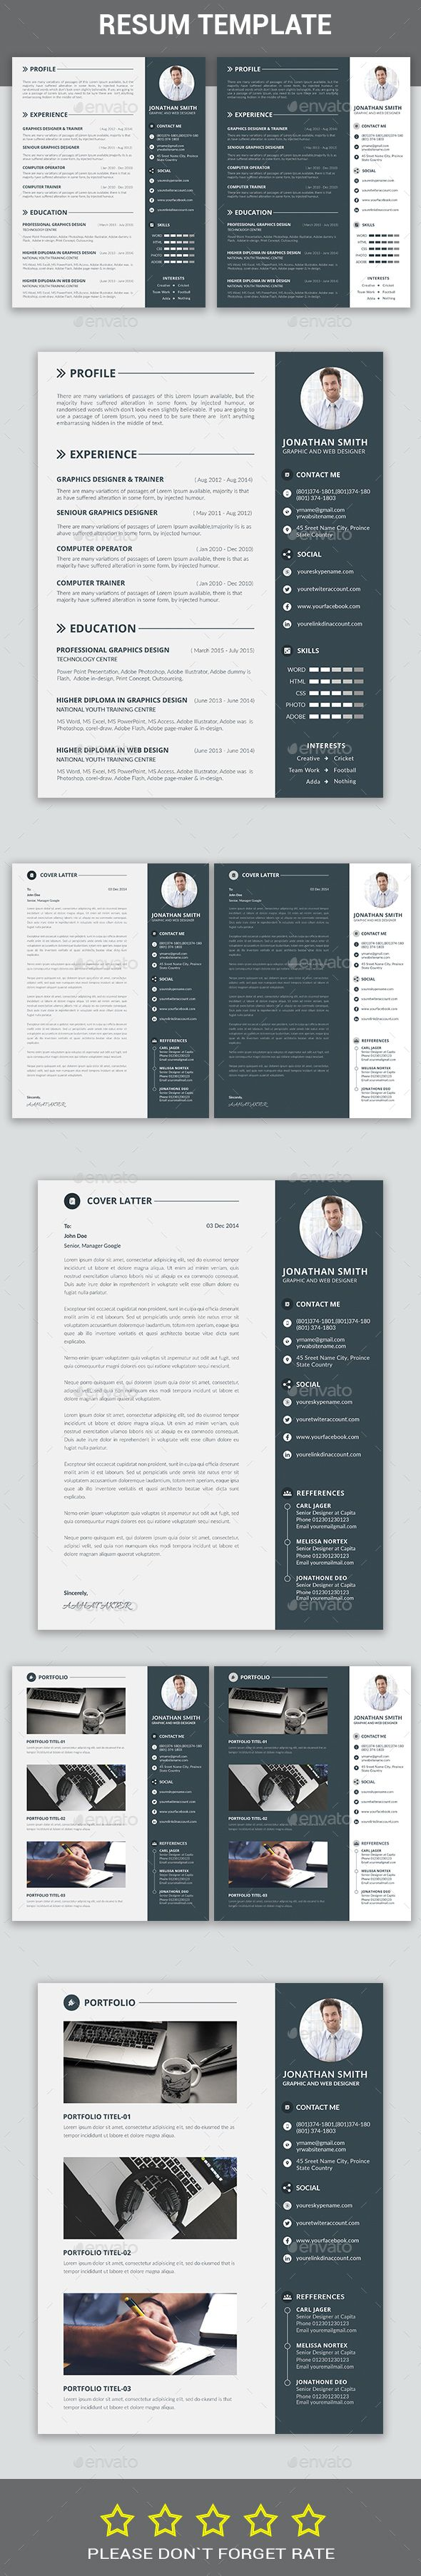 Resume Template PSD Download here httpgraphicrivernetitem 16